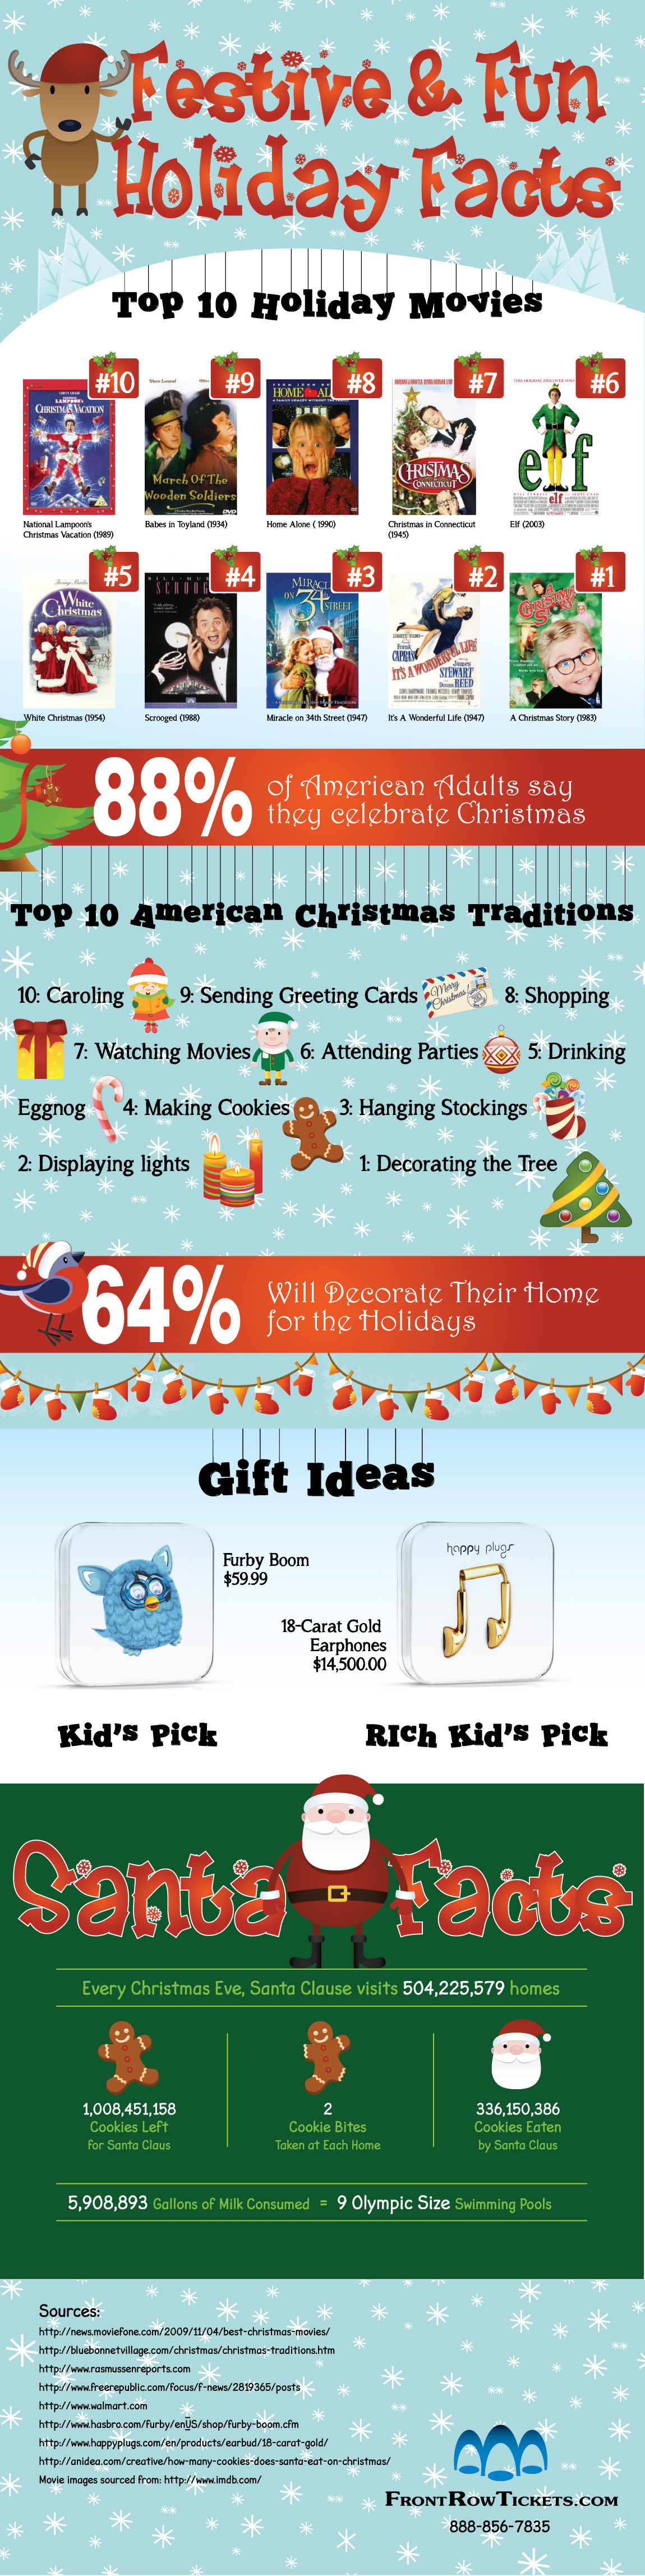 Festive & Fun Holiday Facts - How Thirsty is Santa?